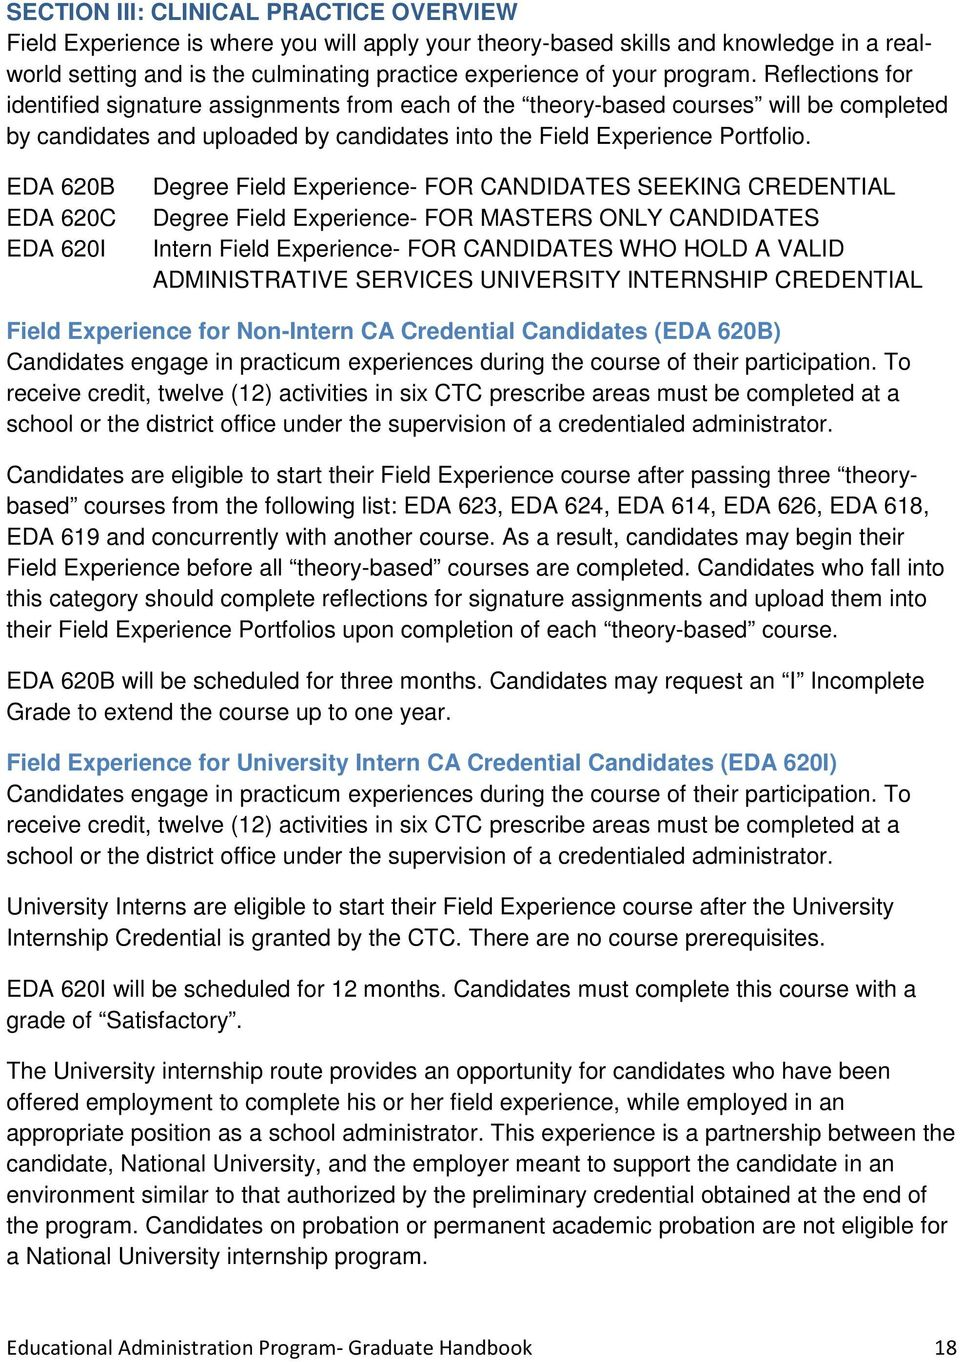 EDA 620B EDA 620C EDA 620I Degree Field Experience- FOR CANDIDATES SEEKING CREDENTIAL Degree Field Experience- FOR MASTERS ONLY CANDIDATES Intern Field Experience- FOR CANDIDATES WHO HOLD A VALID